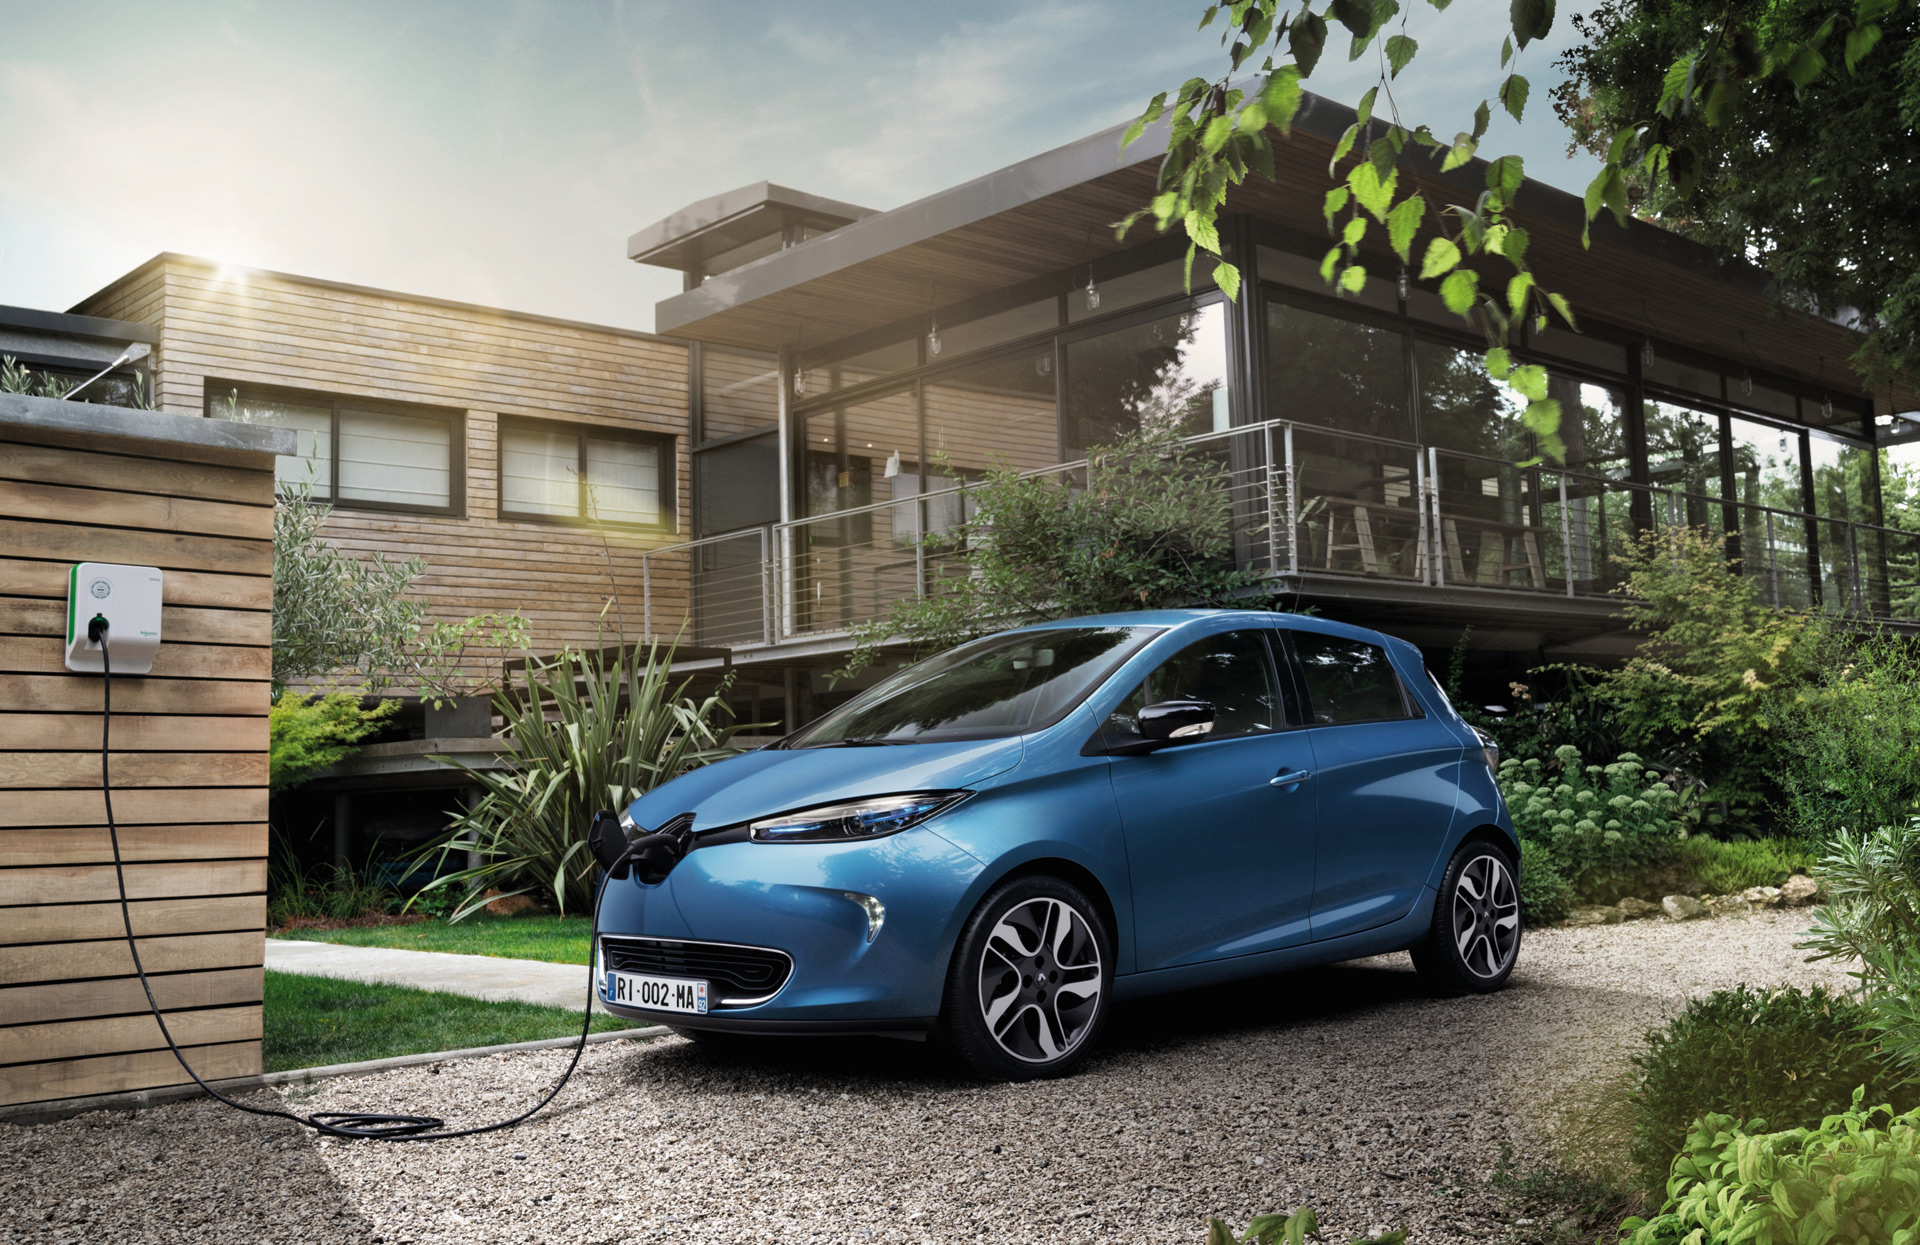 Long Range Renault Zoe Electric Car Reviewed In U K Forbidden Fruit